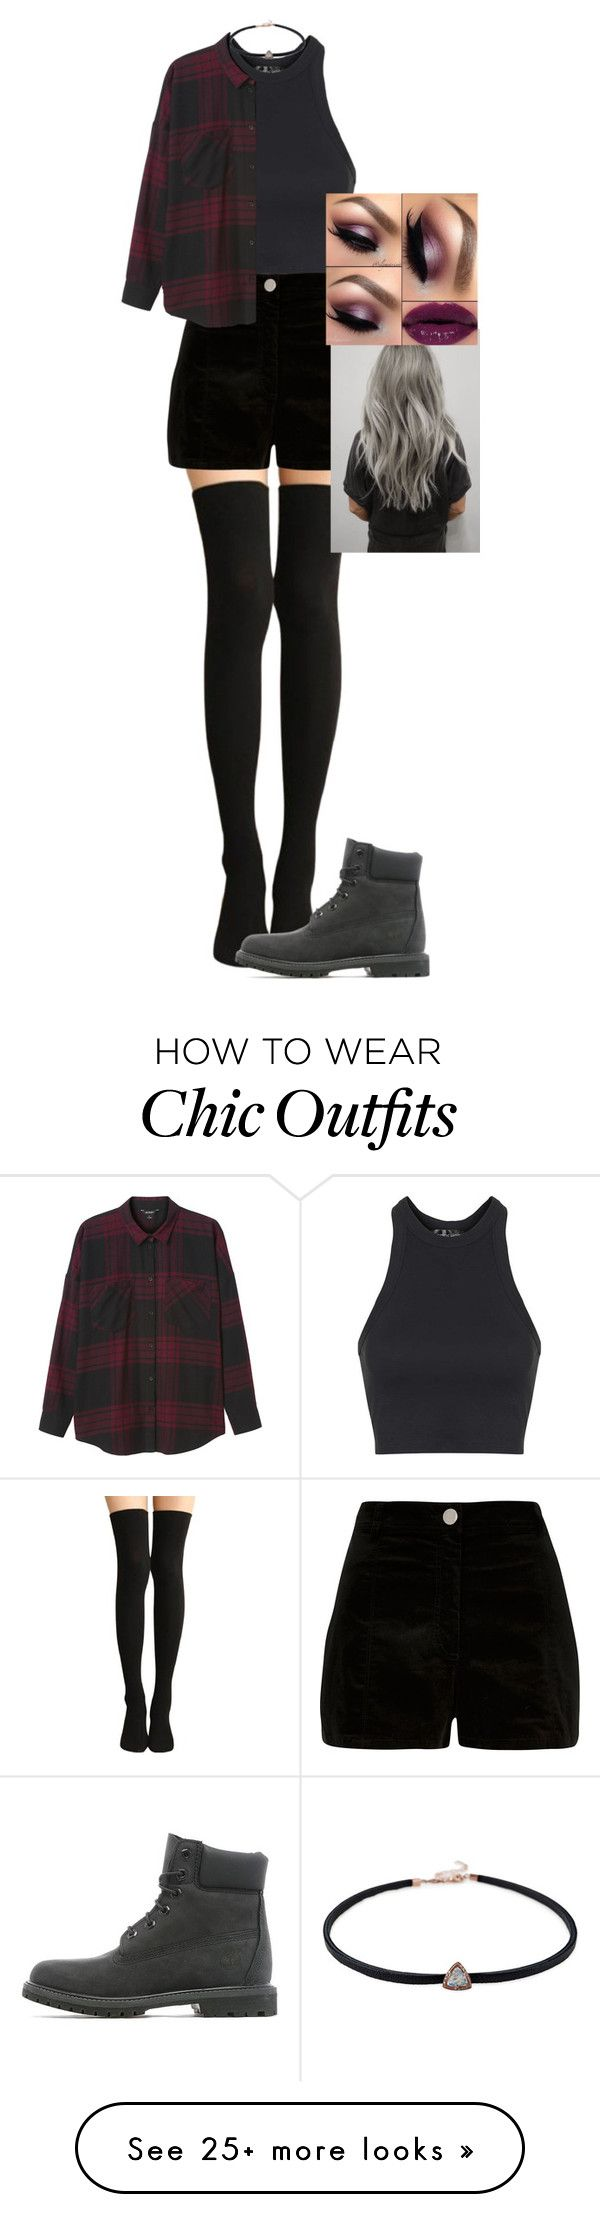 """Empty!"" by pieeella on Polyvore featuring Topshop, River Island, Monki and Timberland"